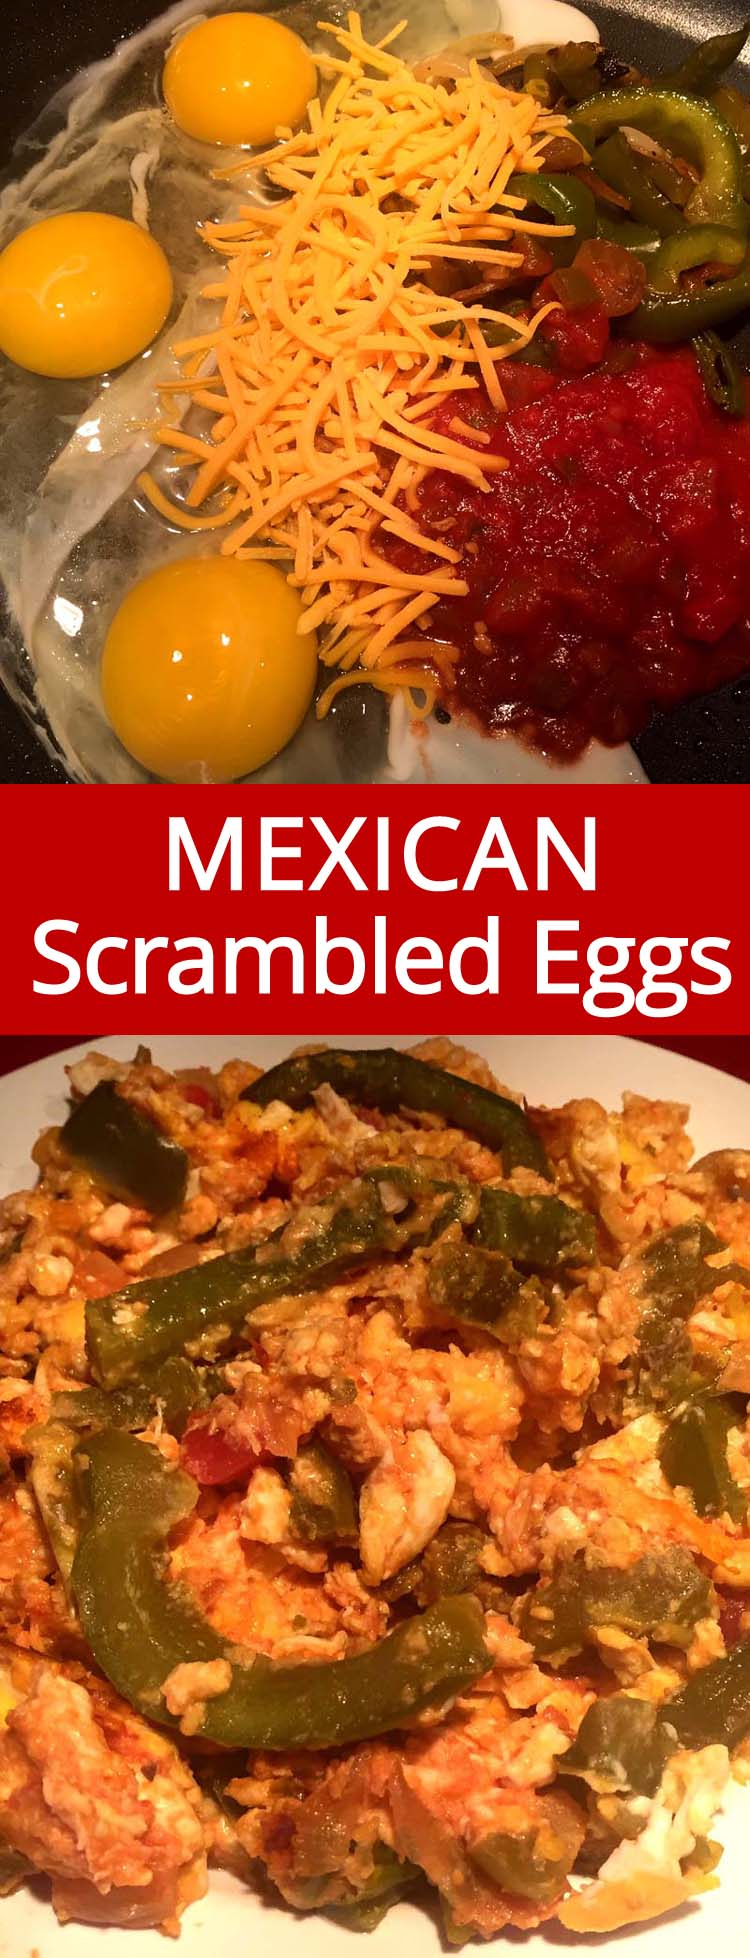 These Mexican scrambled eggs are amazing!  When I need to change up my omelette routine, this is exactly what I need! Eggs, peppers, onions, salsa and shredded cheese - mmmm!